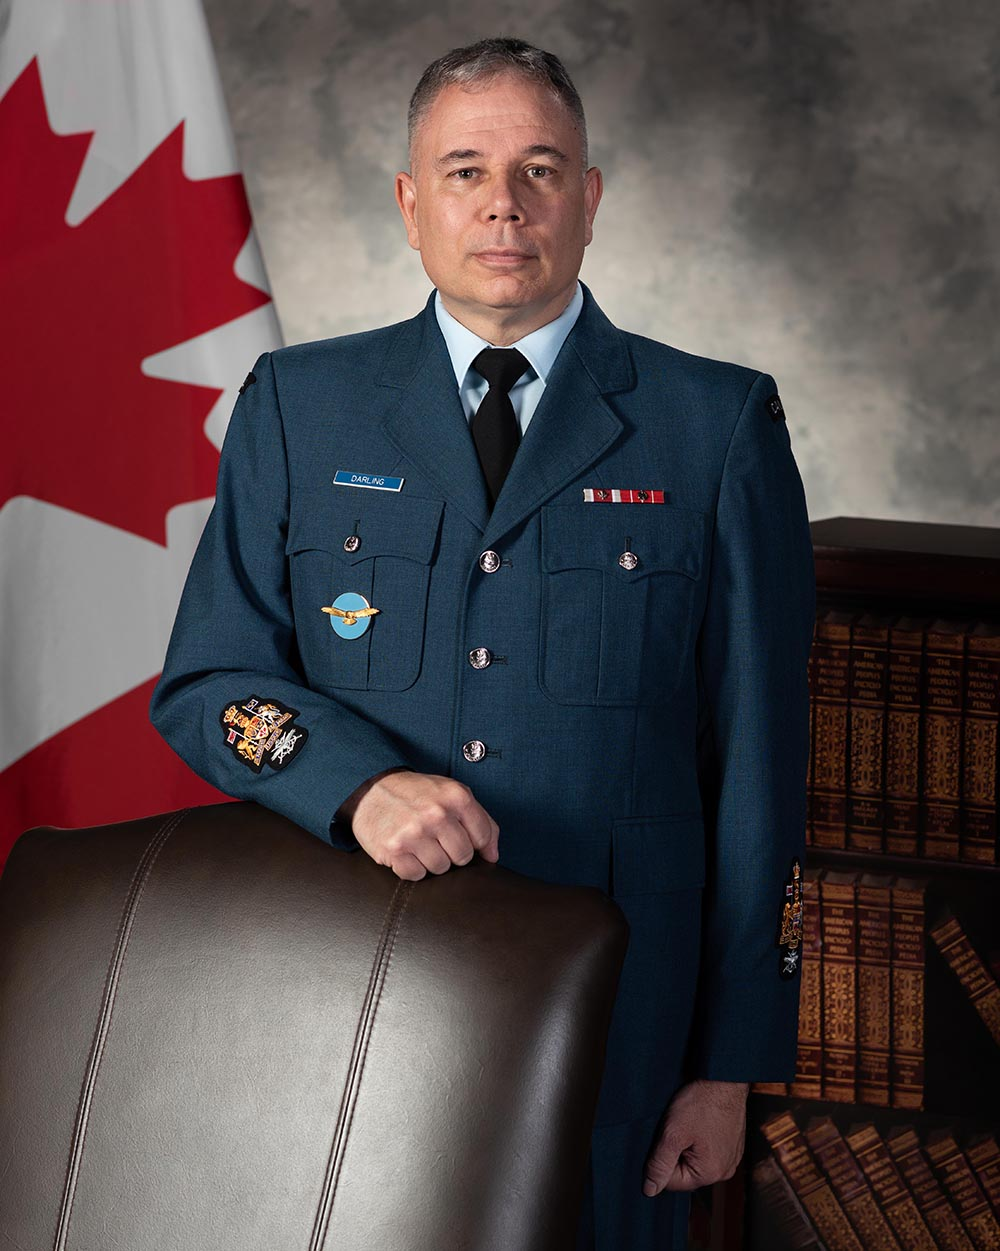 Chief Warrant Lee Darling